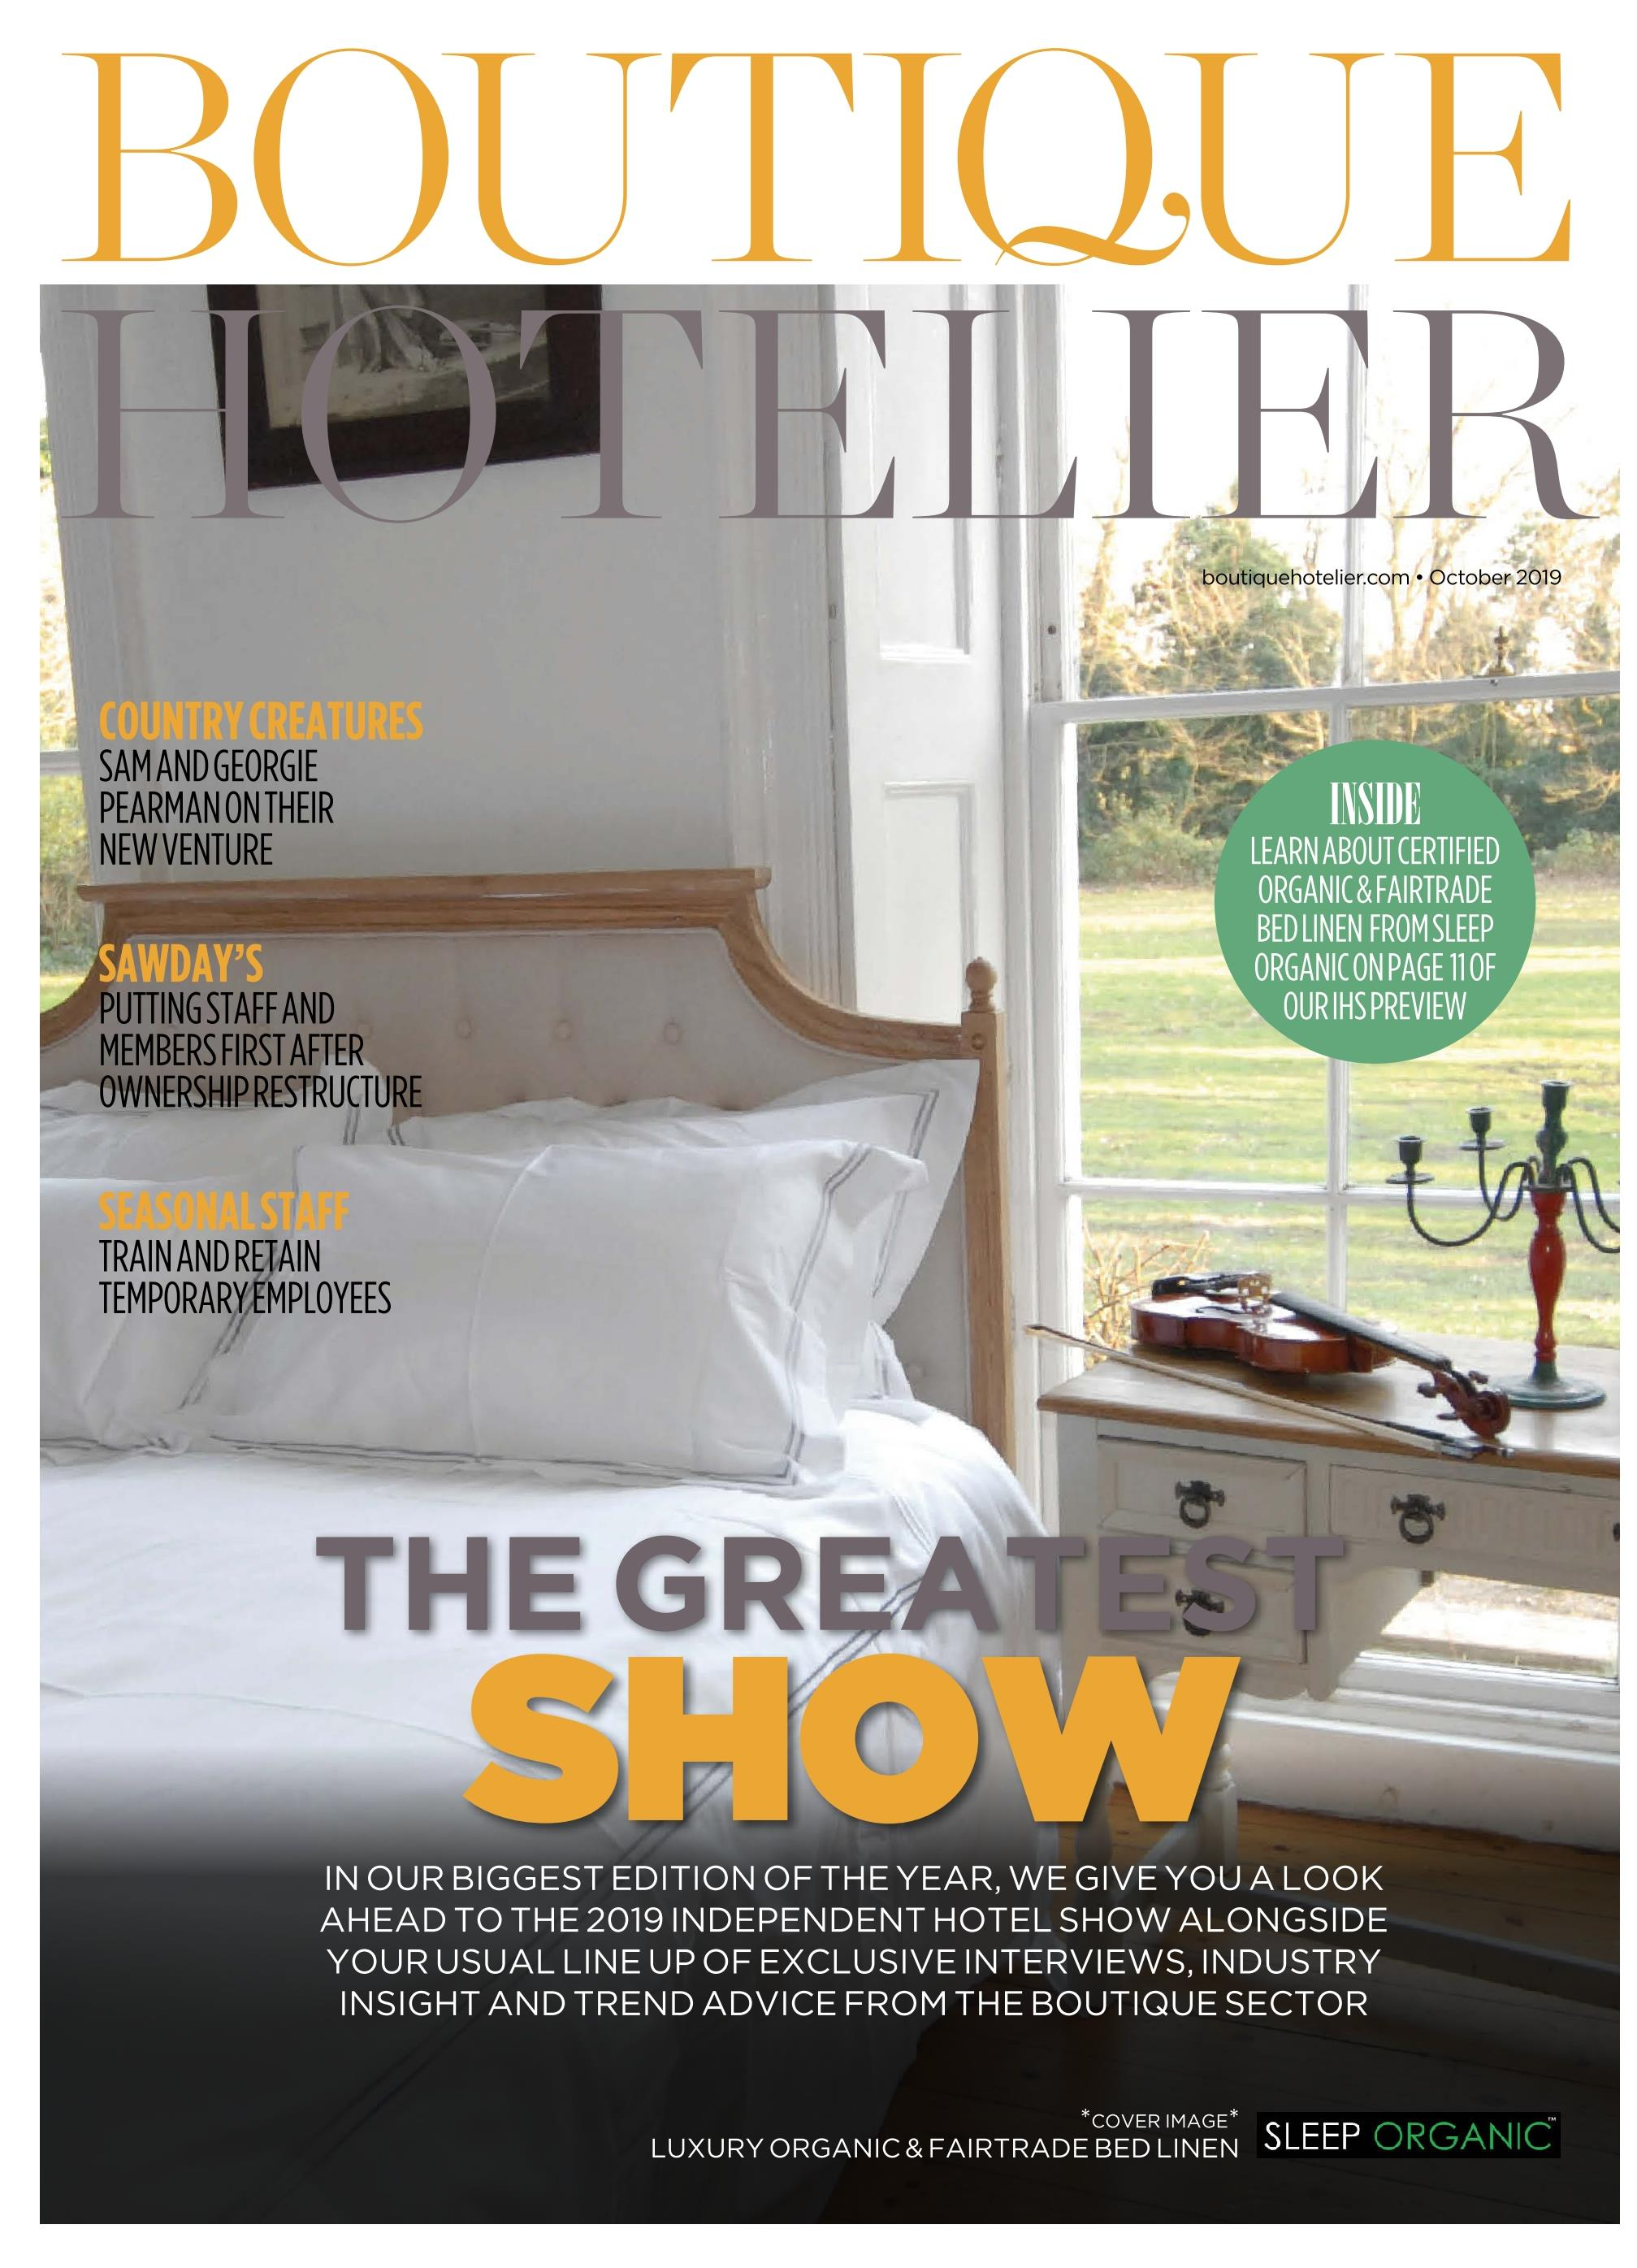 Boutique Hotelier Sleep organic Cover October 20019